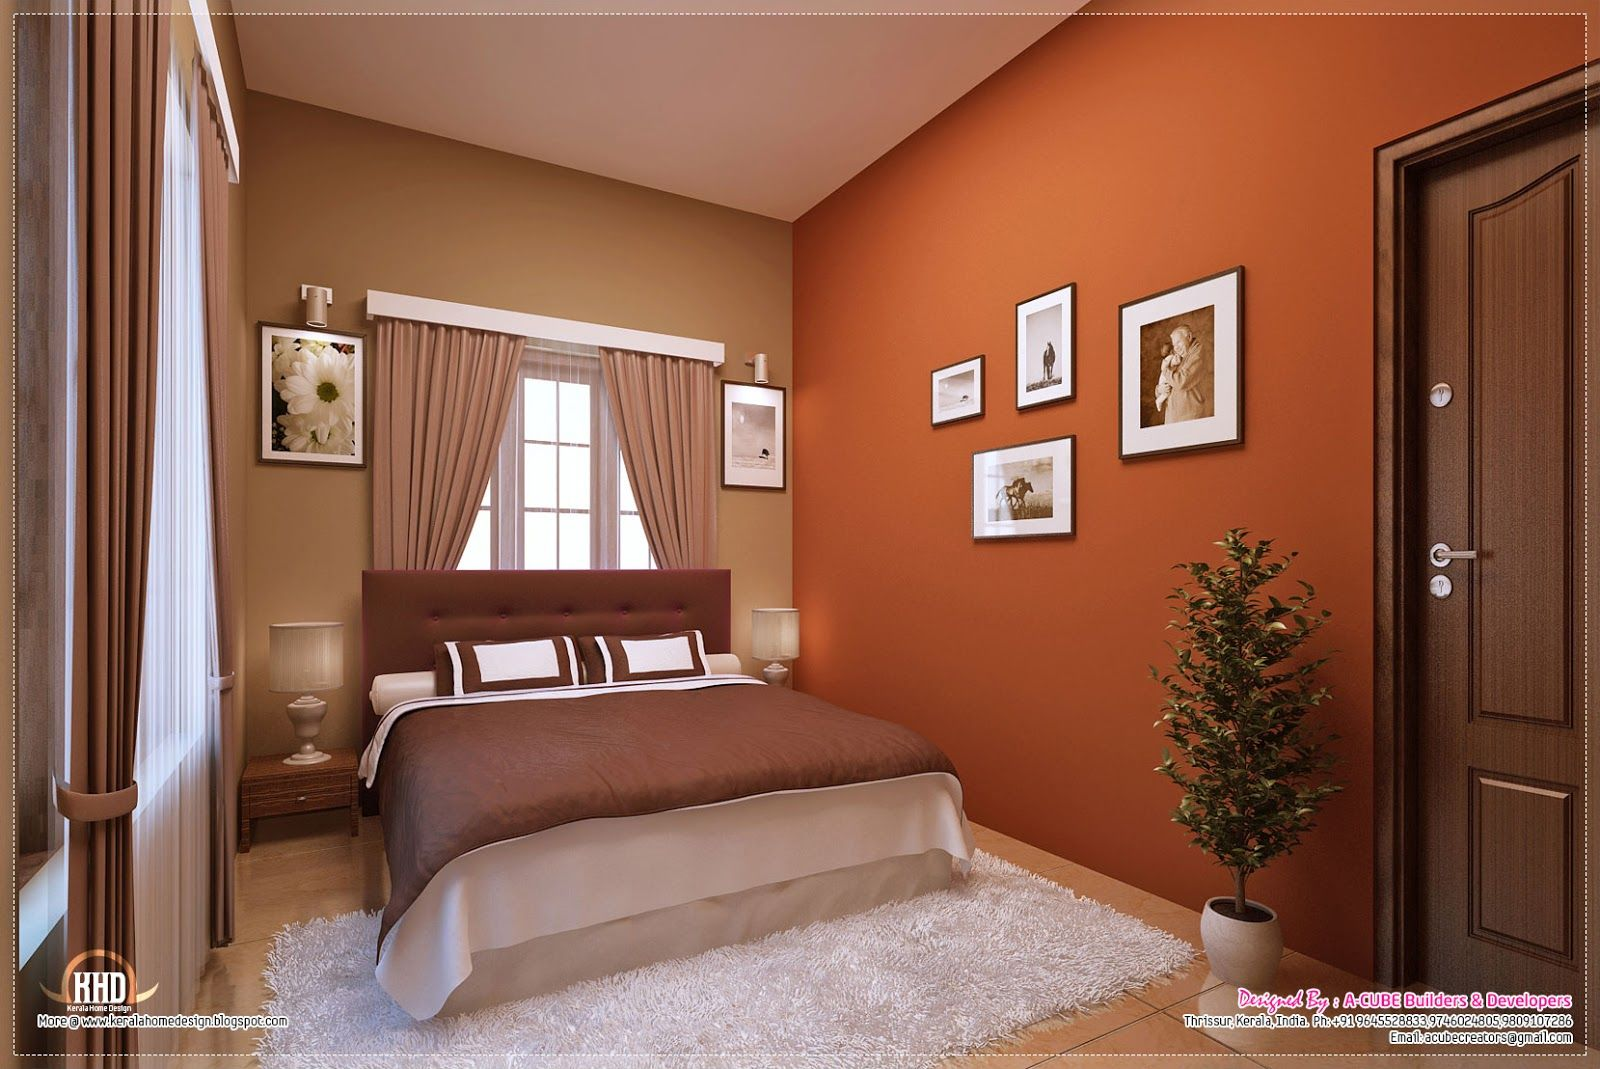 Awesome Interior Decoration Ideas Kerala Home Design And Small Bedroom Interior Indian Bedroom Decor Master Bedroom Interior